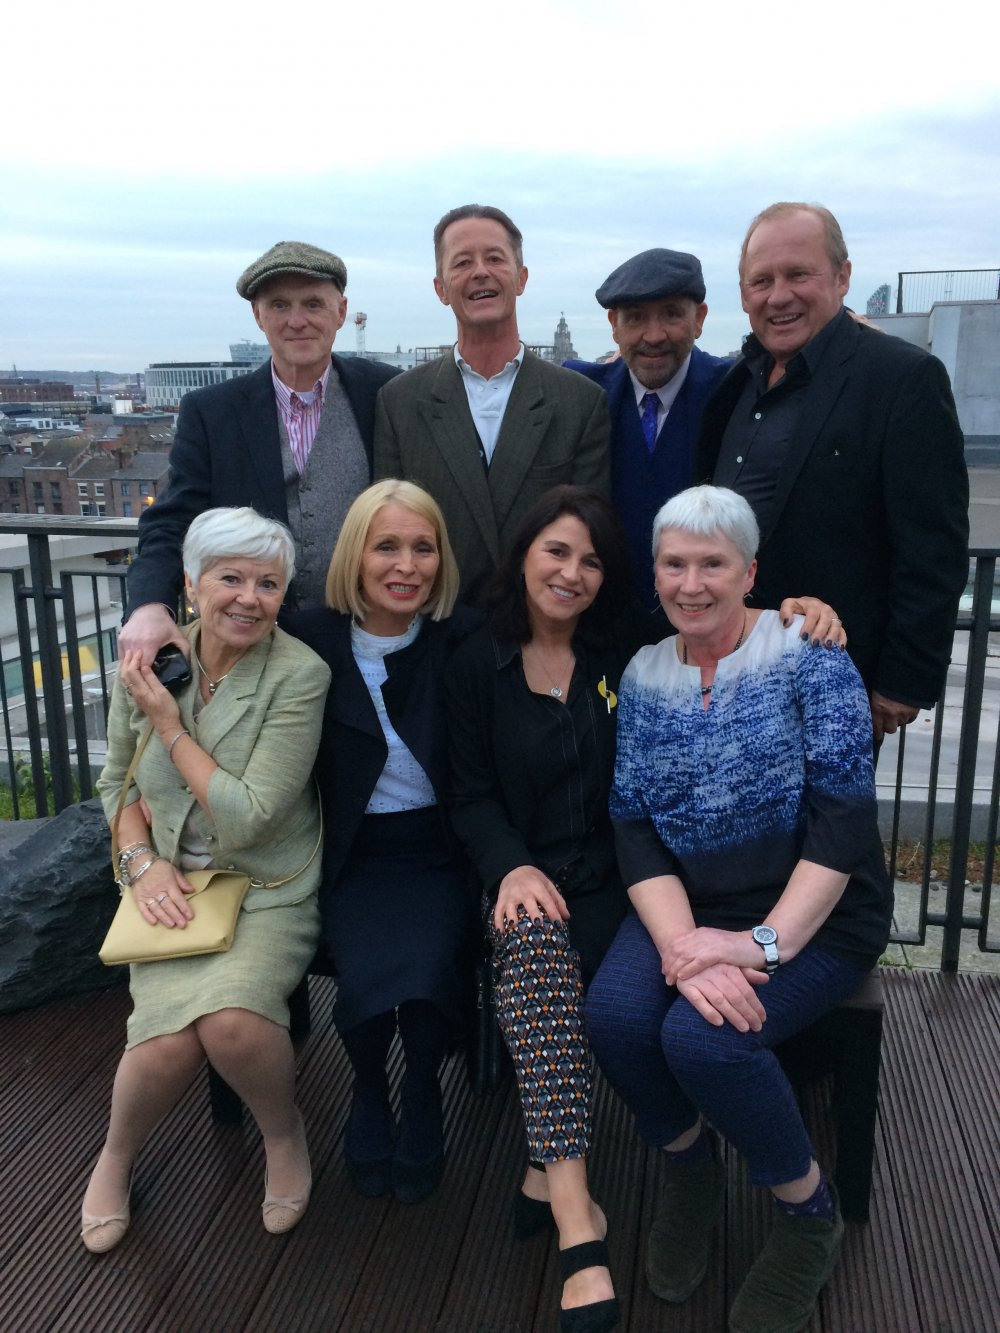 The cast and crew of Letter to Brezhnev reunited in April 2017 for a special screening at BFI Southbank. Back row (L to R): Chris Bernard, director; Charles Caselton, executive producer; Frank Clarke, writer; Peter Firth, actor. Front row (L to R): Maureen Sinclair, Clapperboard UK/Q&A host; Margi Clarke, actor; Alexandra Pigg, actor; Janet Goddard, producer